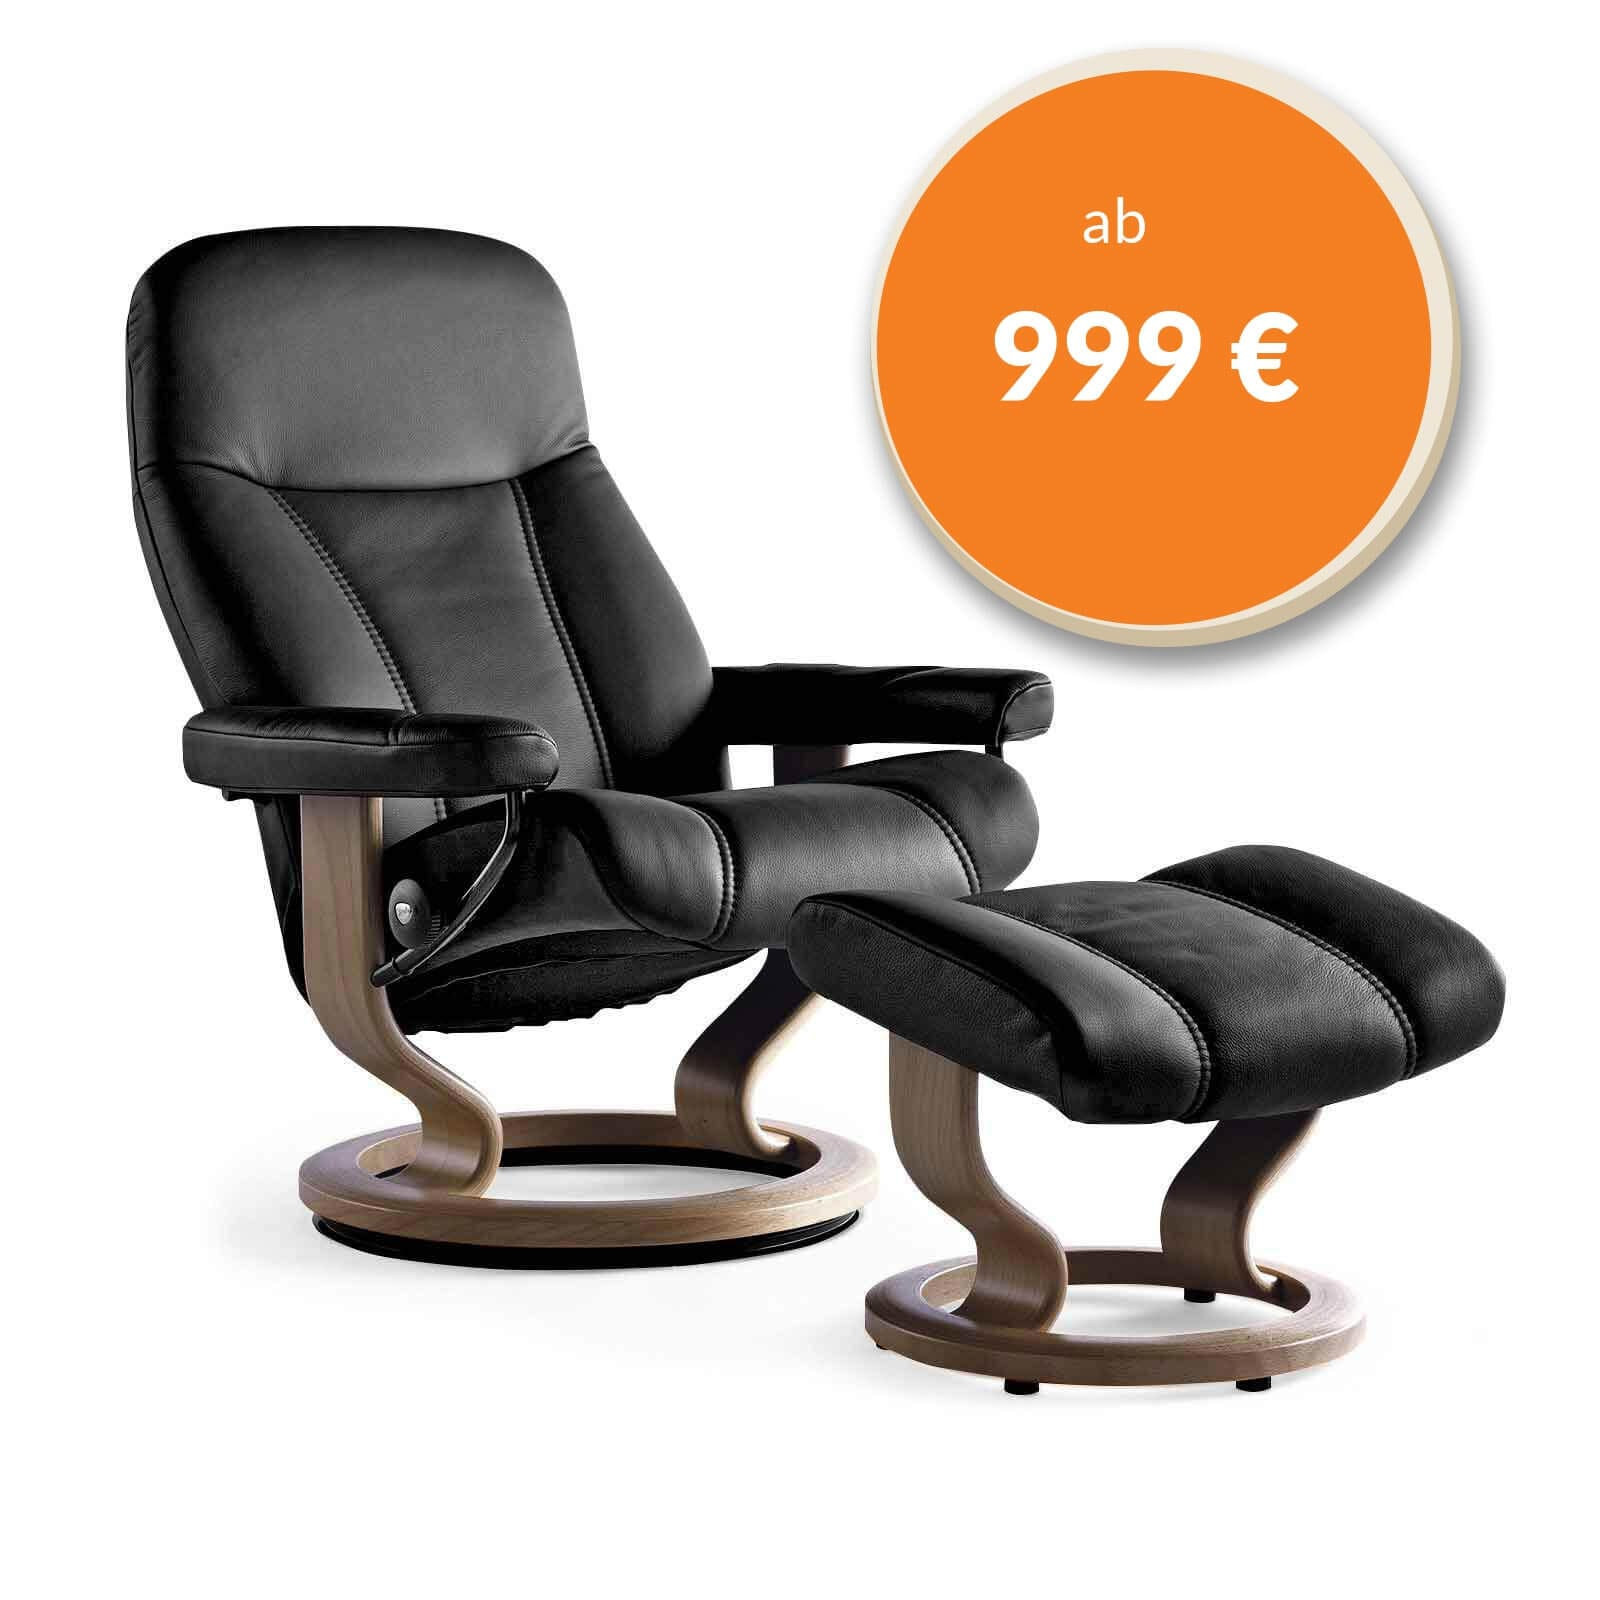 Relaxsessel Angebot Stressless Angebote Relaxsessel Stressless Online Shop